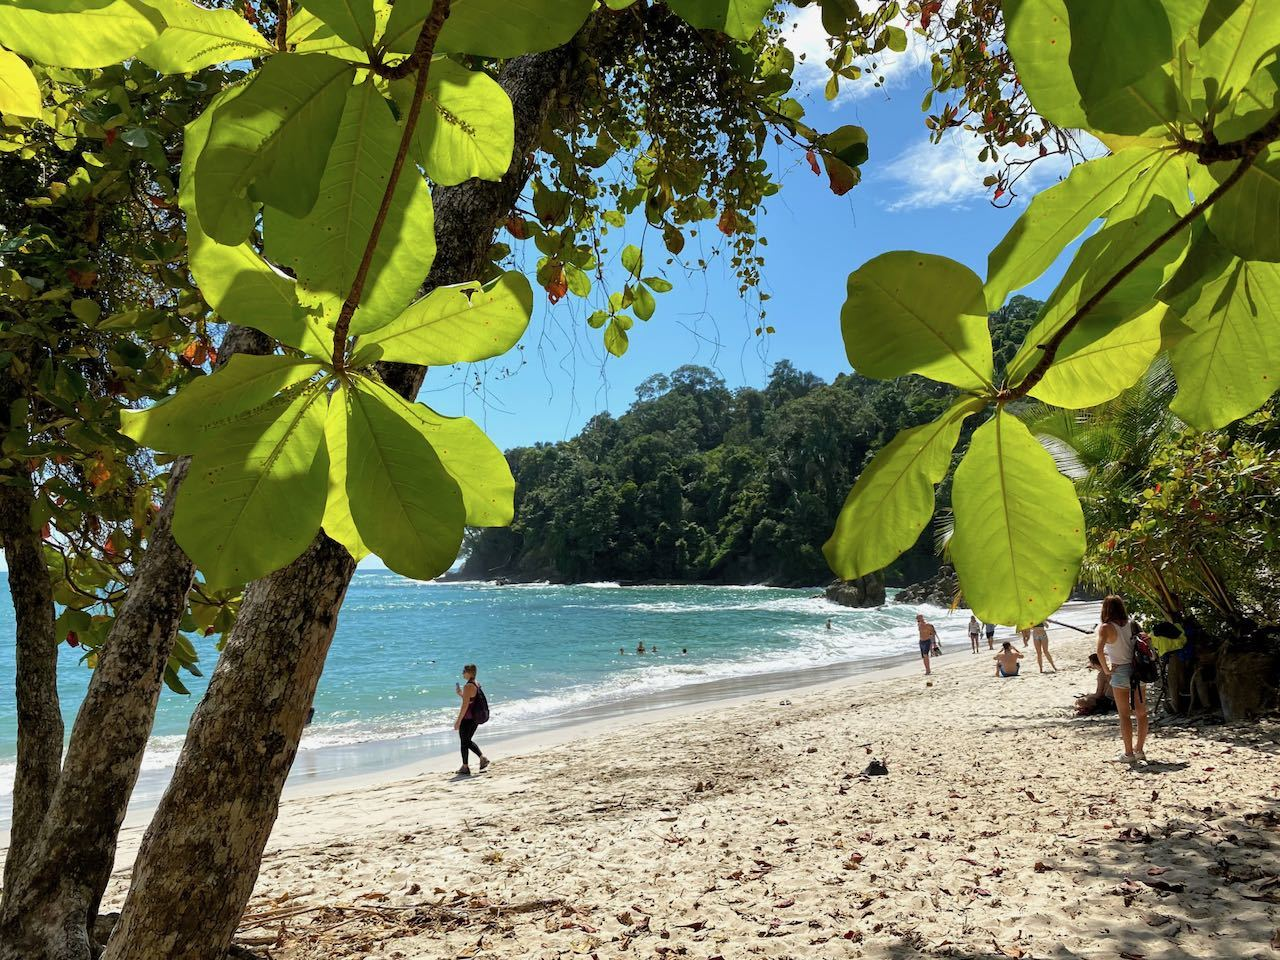 View of sandy beach through the trees in Manuel Antonio National Park